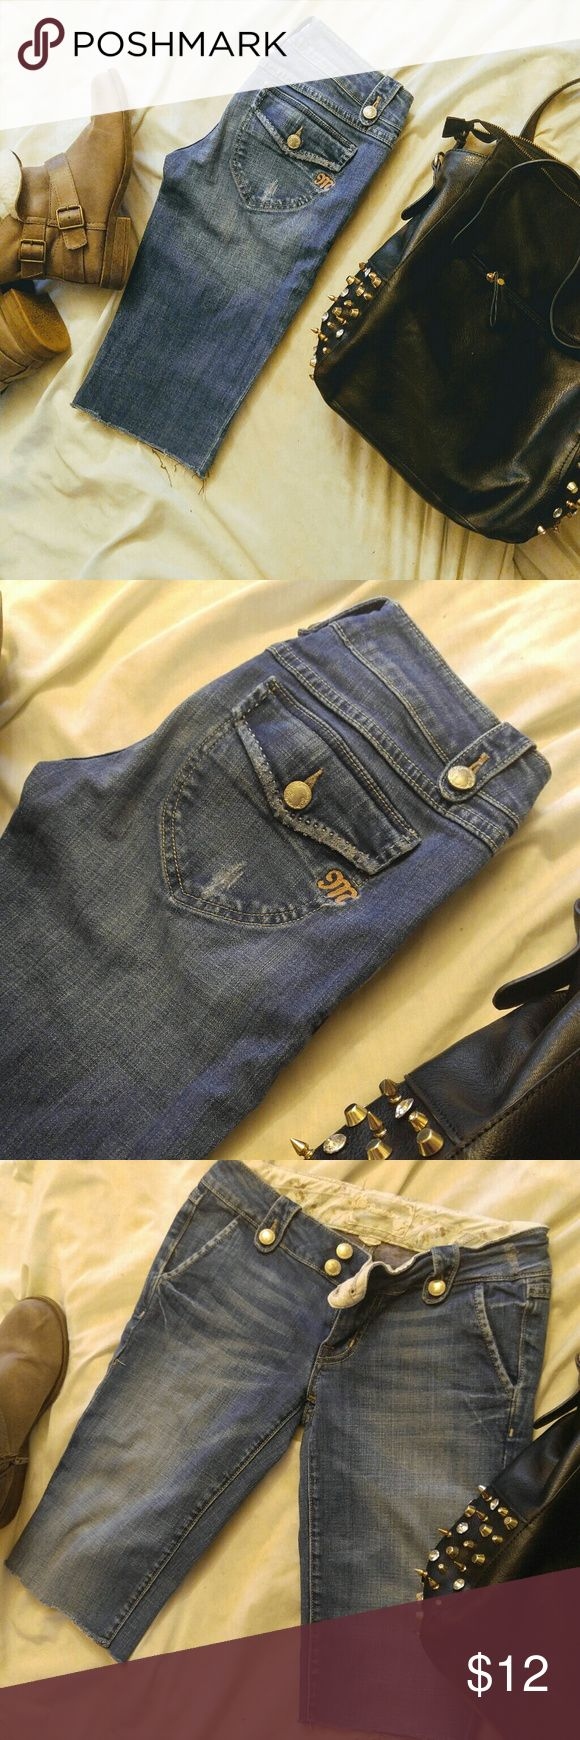 Miss Me Reminisce Collection Cutoff Jeans Shorts Miss Me Reminisce Collection Cutoff Jeans Shorts . Size 26. Homemade cut offs at knee. Reason for low price. Other wise flawless!!!!!!!!! You will love these. Take home for summer!!!! xoxo Miss Me Jeans